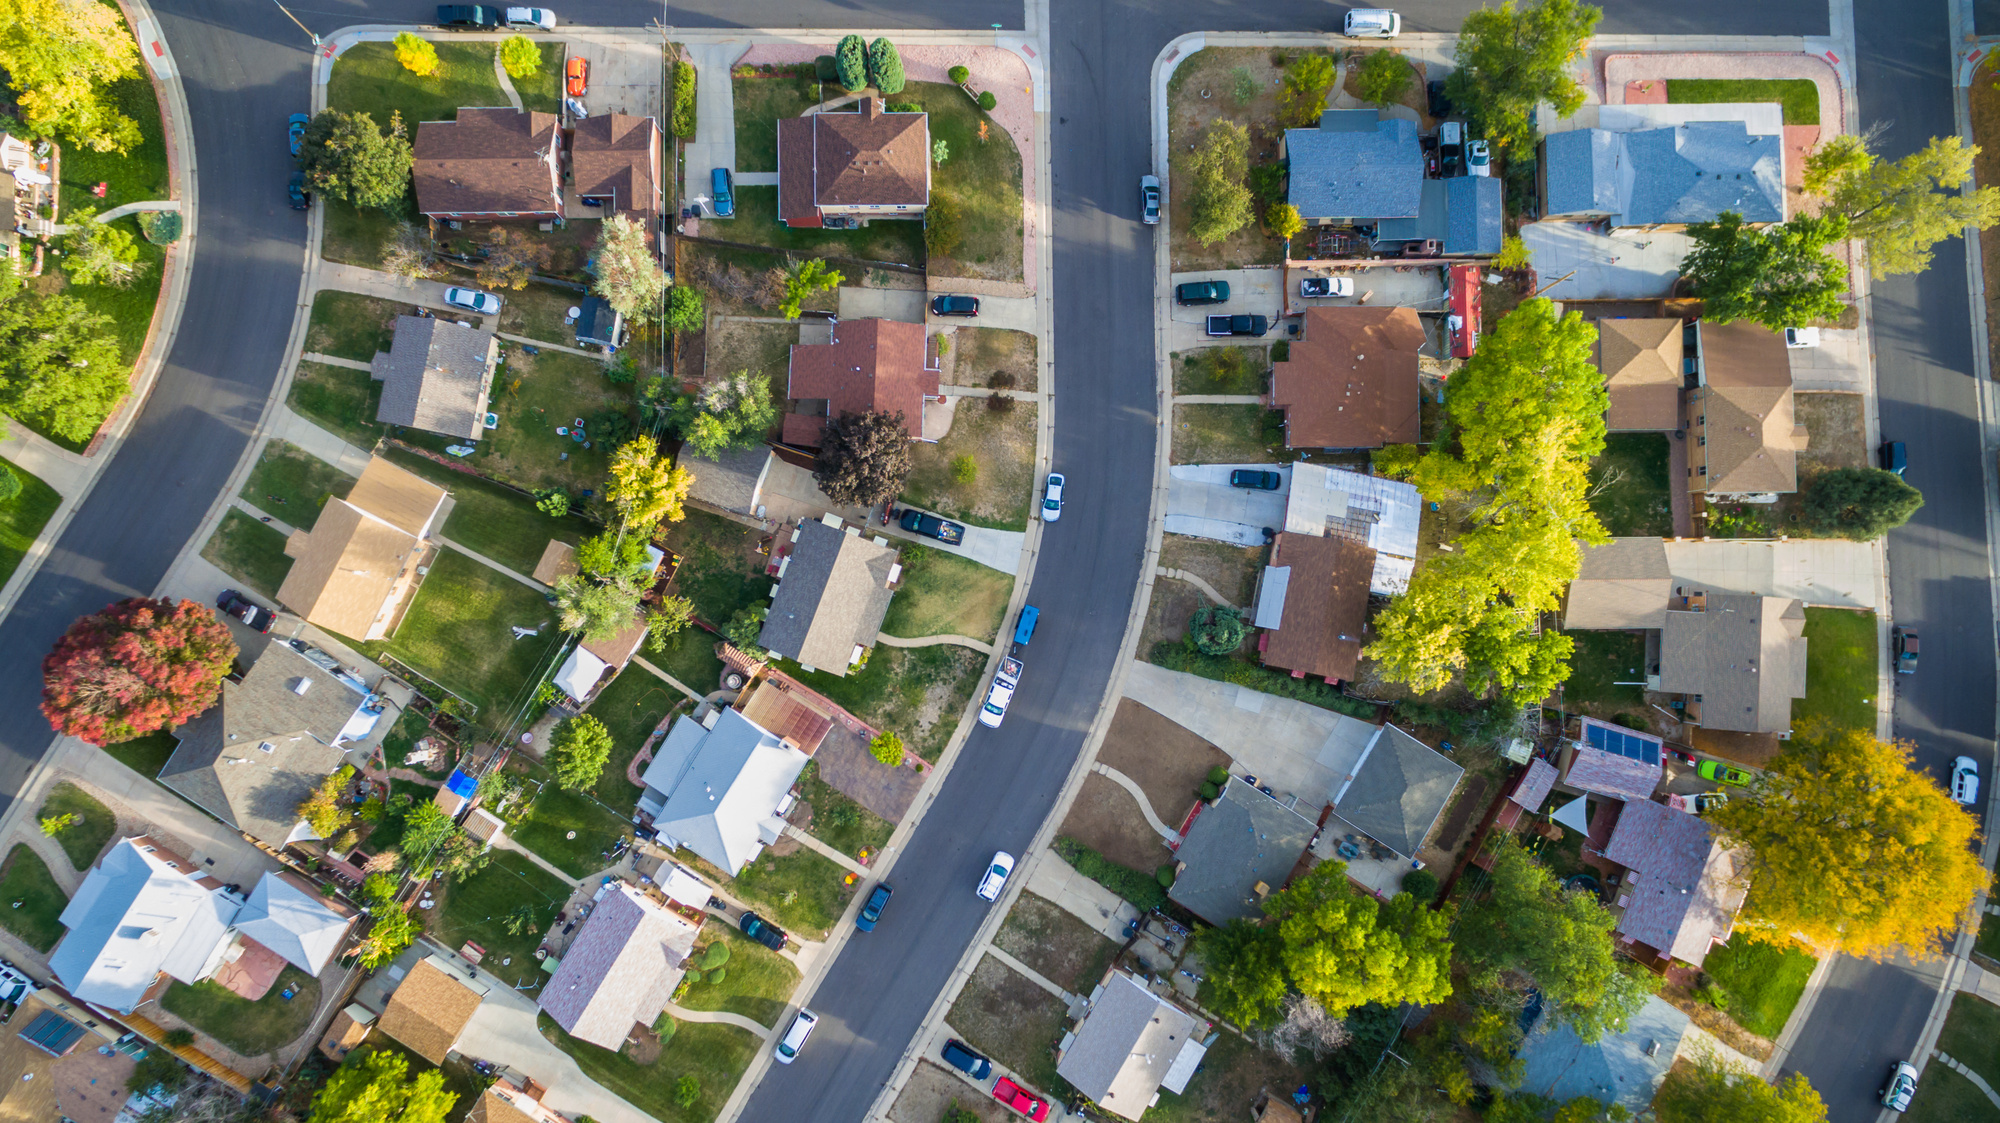 Deciding Where to Live: Your Biggest Considerations and Factors